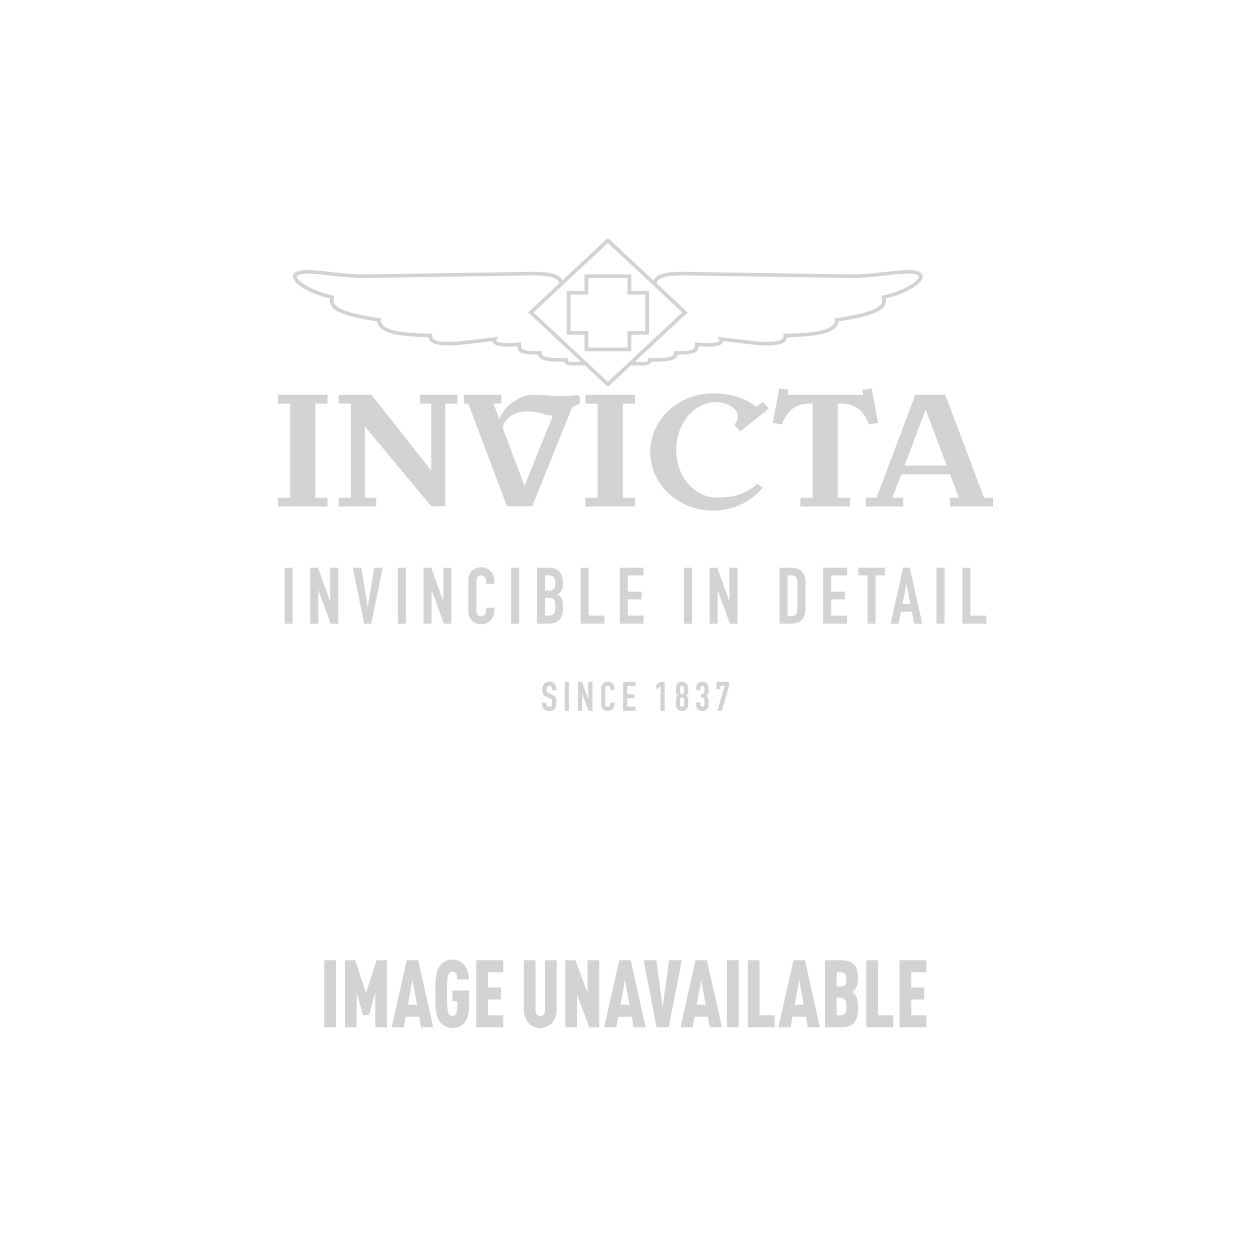 Invicta Coalition Forces Mens Quartz 48mm Stainless Steel Case, Black, Grey Dial - Model 31424